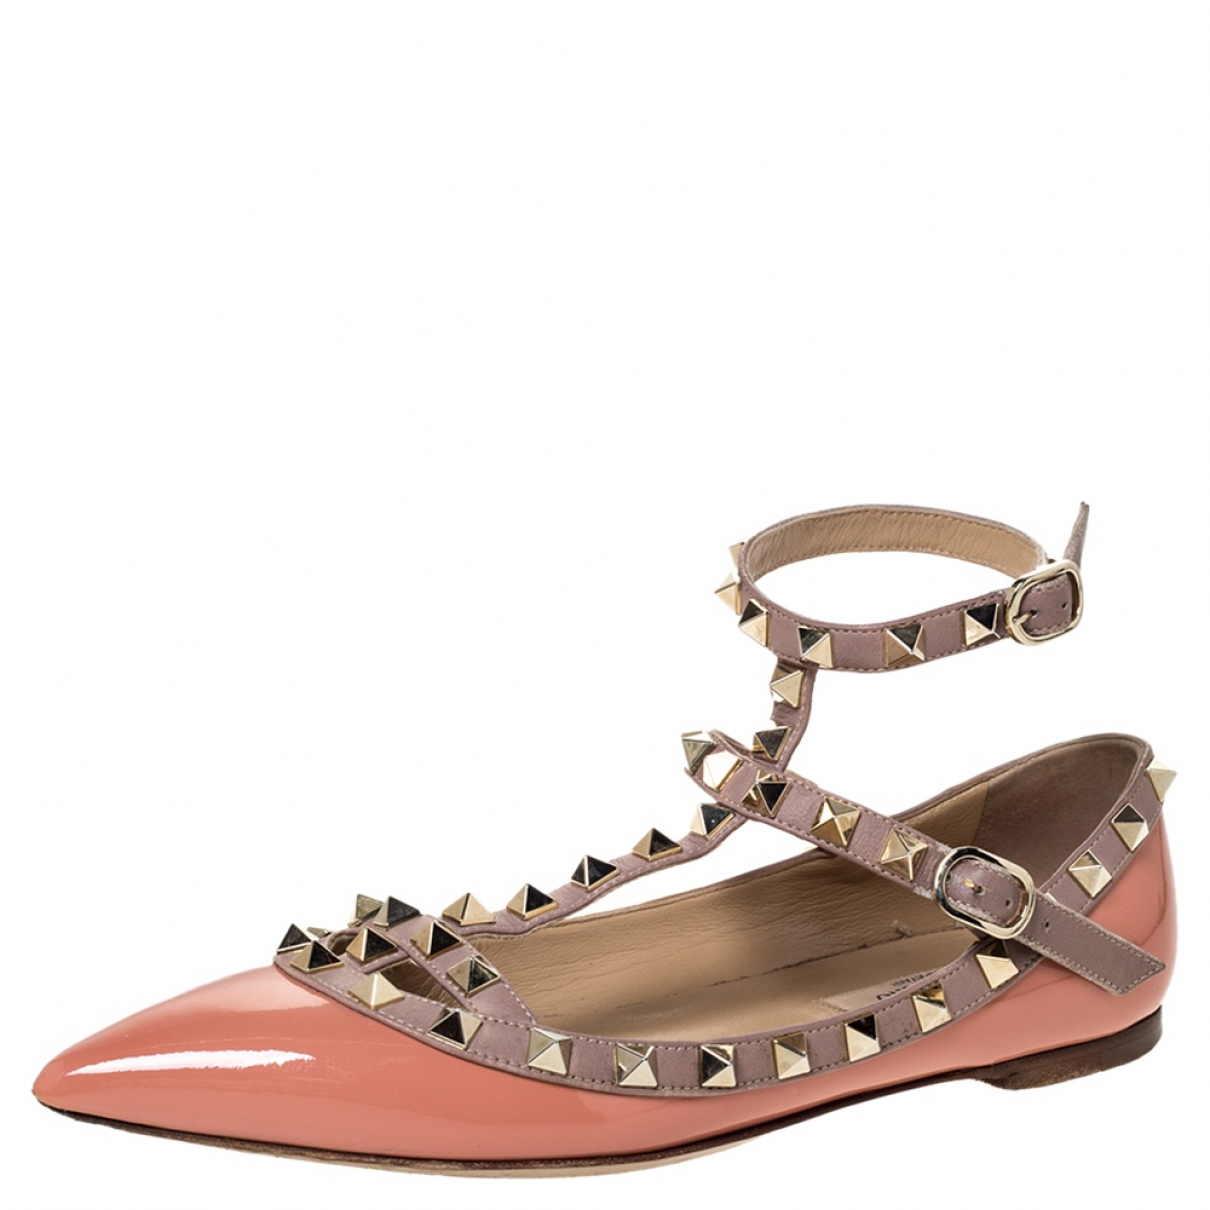 Autre Marque \N Pink Patent leather Sandals for Women 4.5 US